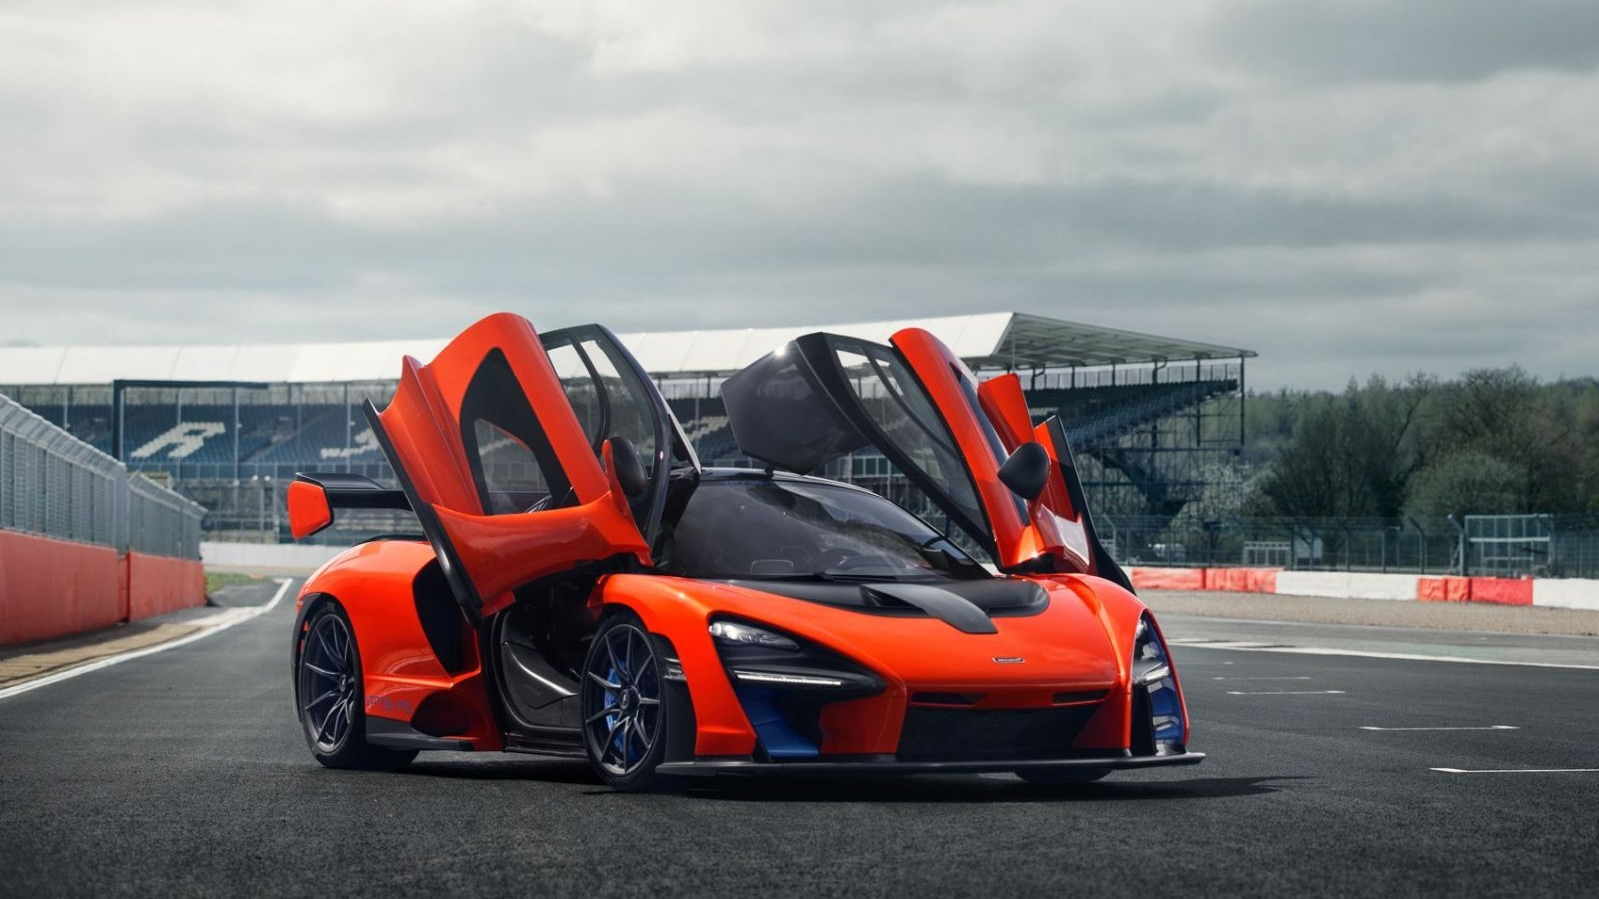 Wallpaper Mclaren Senna P15 2019 4k Automotive Cars: 2019 McLaren Senna By Hennessey Pictures, Photos